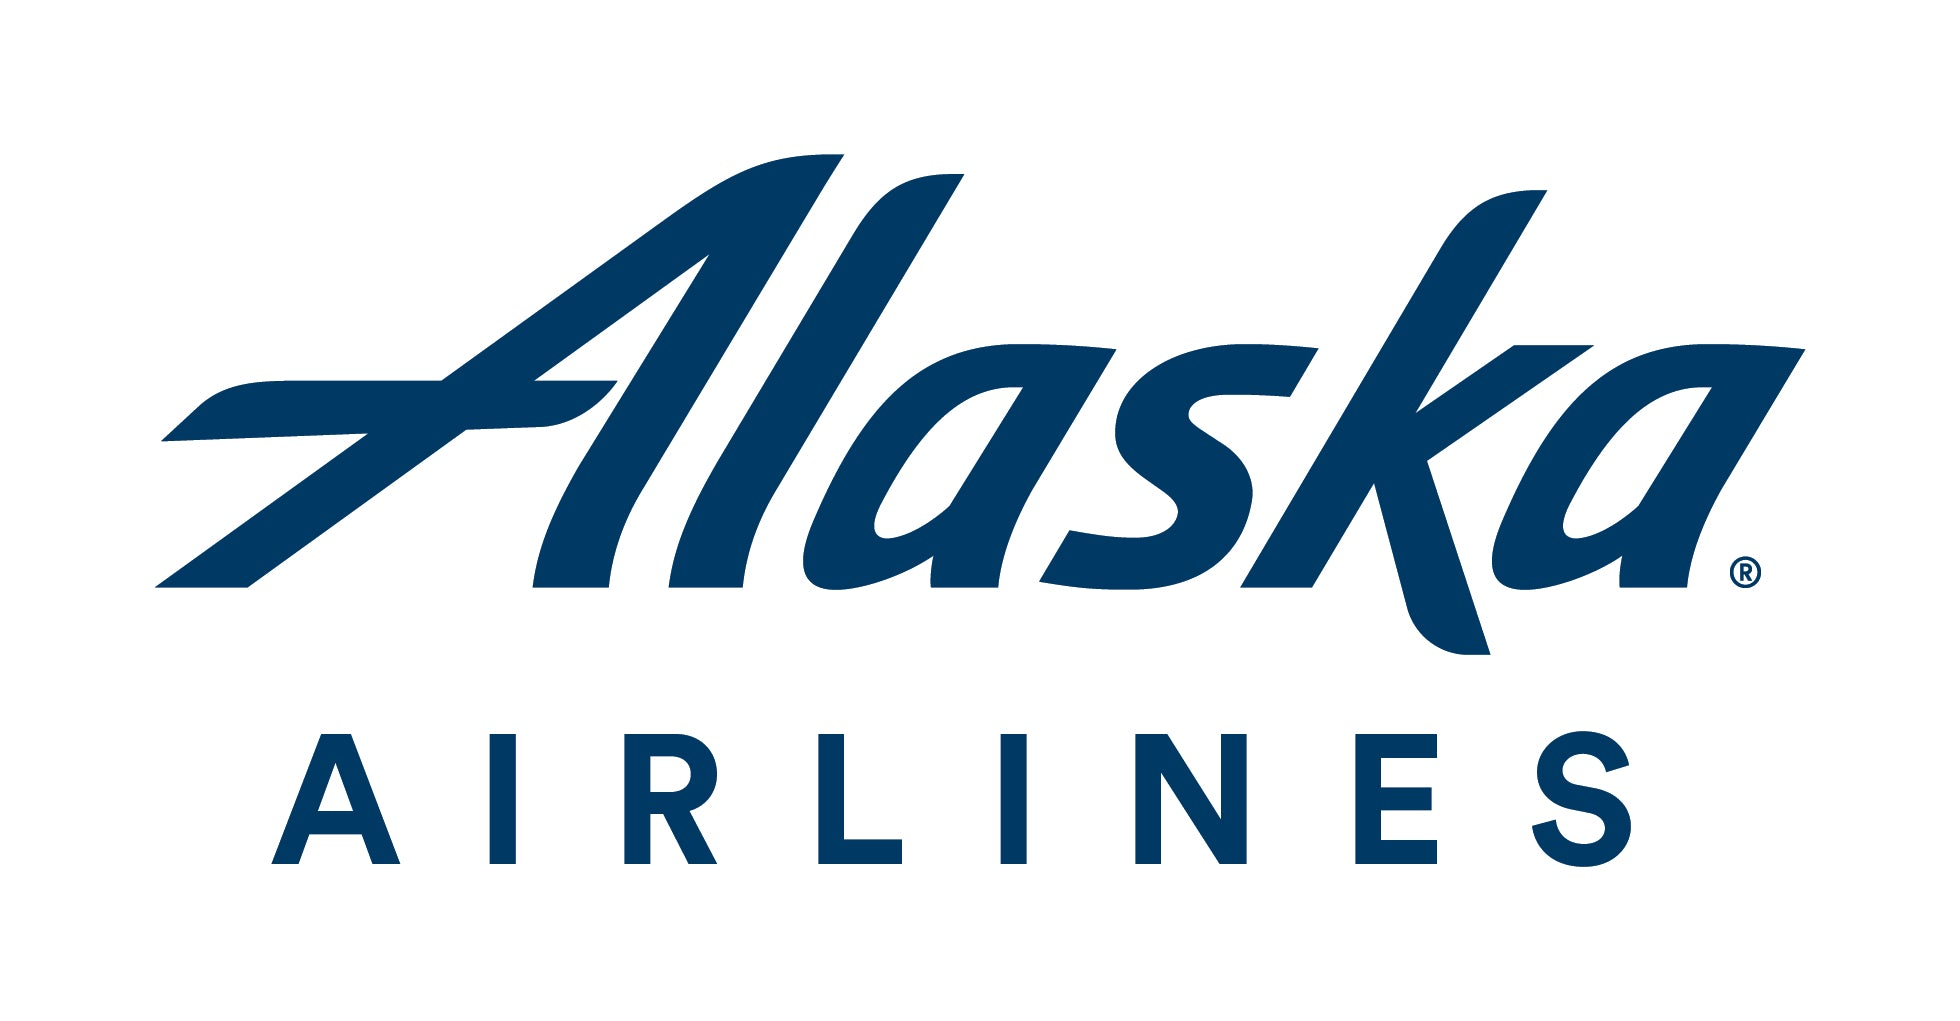 Travel authorization terms amp conditions cotopaxi the travel authorization certificate is valid for flights served by alaska airlines flights numbered 1 999 2000 2999 andor sky west airlines flights 1betcityfo Gallery